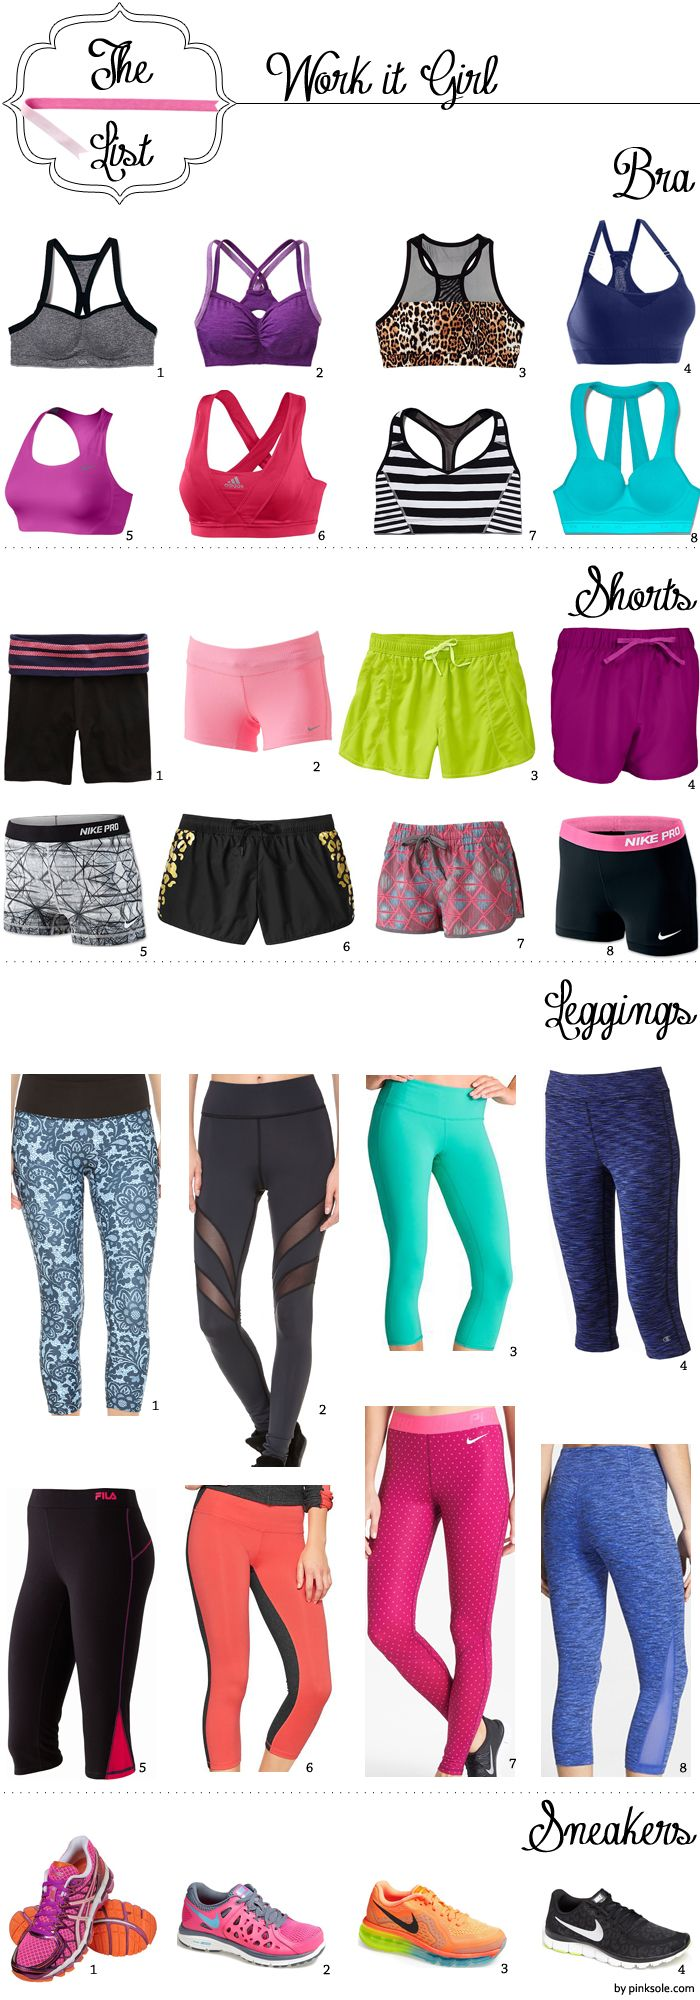 Cute Workout Clothes | Work It Girl | Workout Gear #idealshape